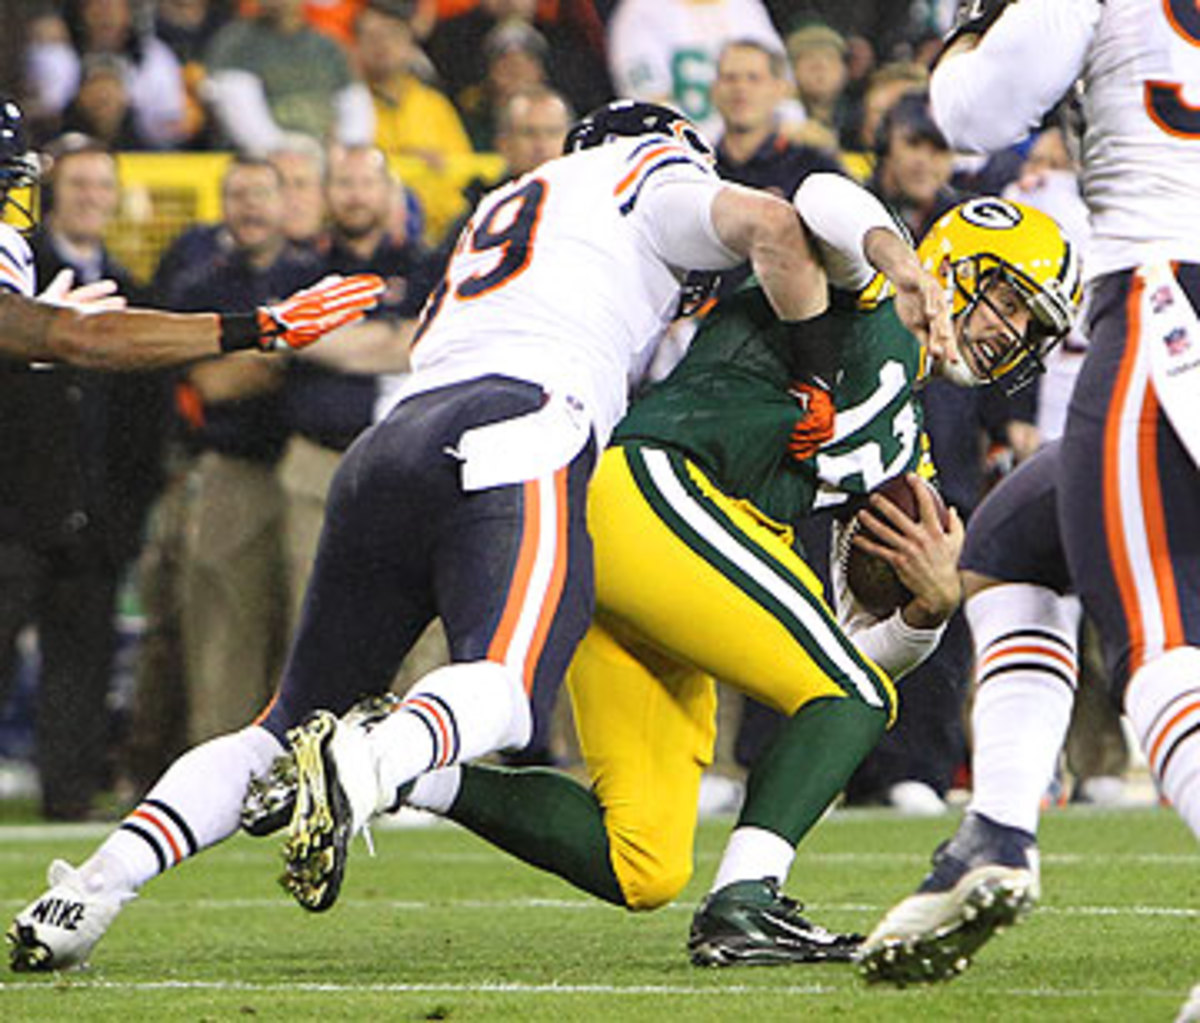 Aaron Rodgers hasn't played in a game since breaking his collarbone against the Bears in Week 9. (Mike McGinnis/Getty Images)